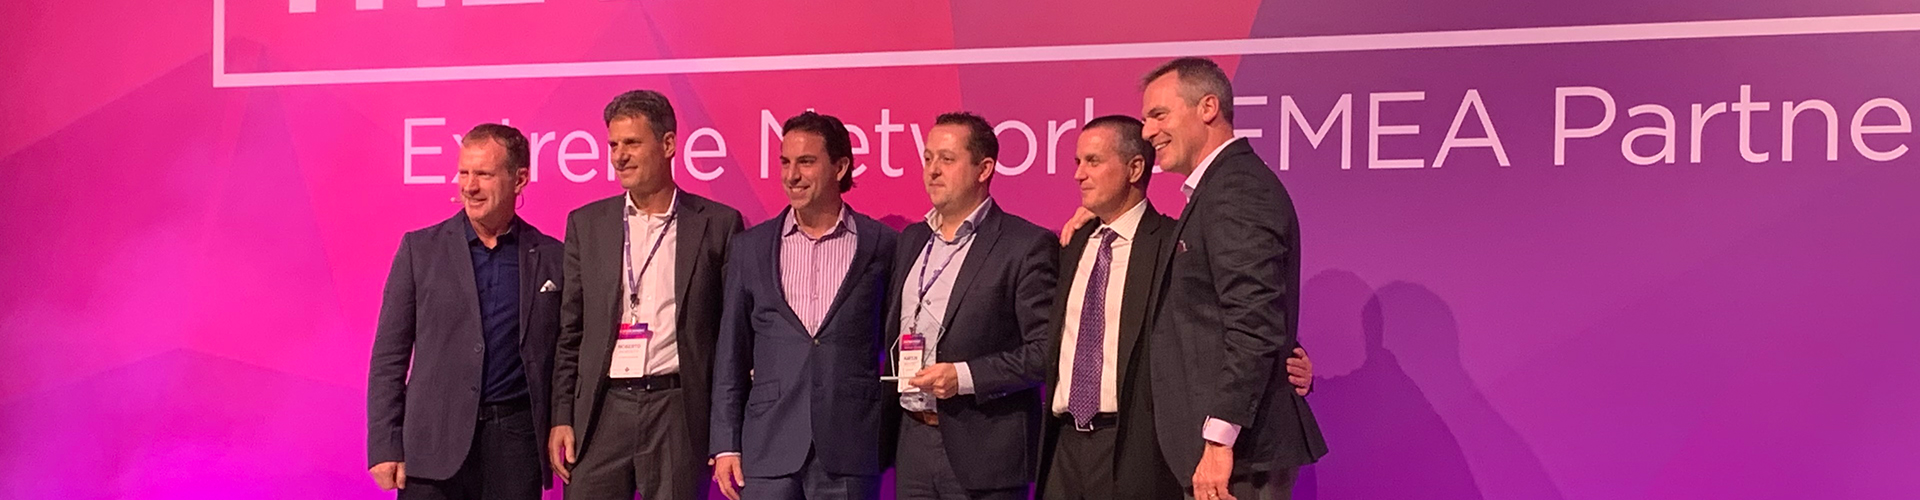 Wentzo is Extreme Cloud Networking Partner 2019!